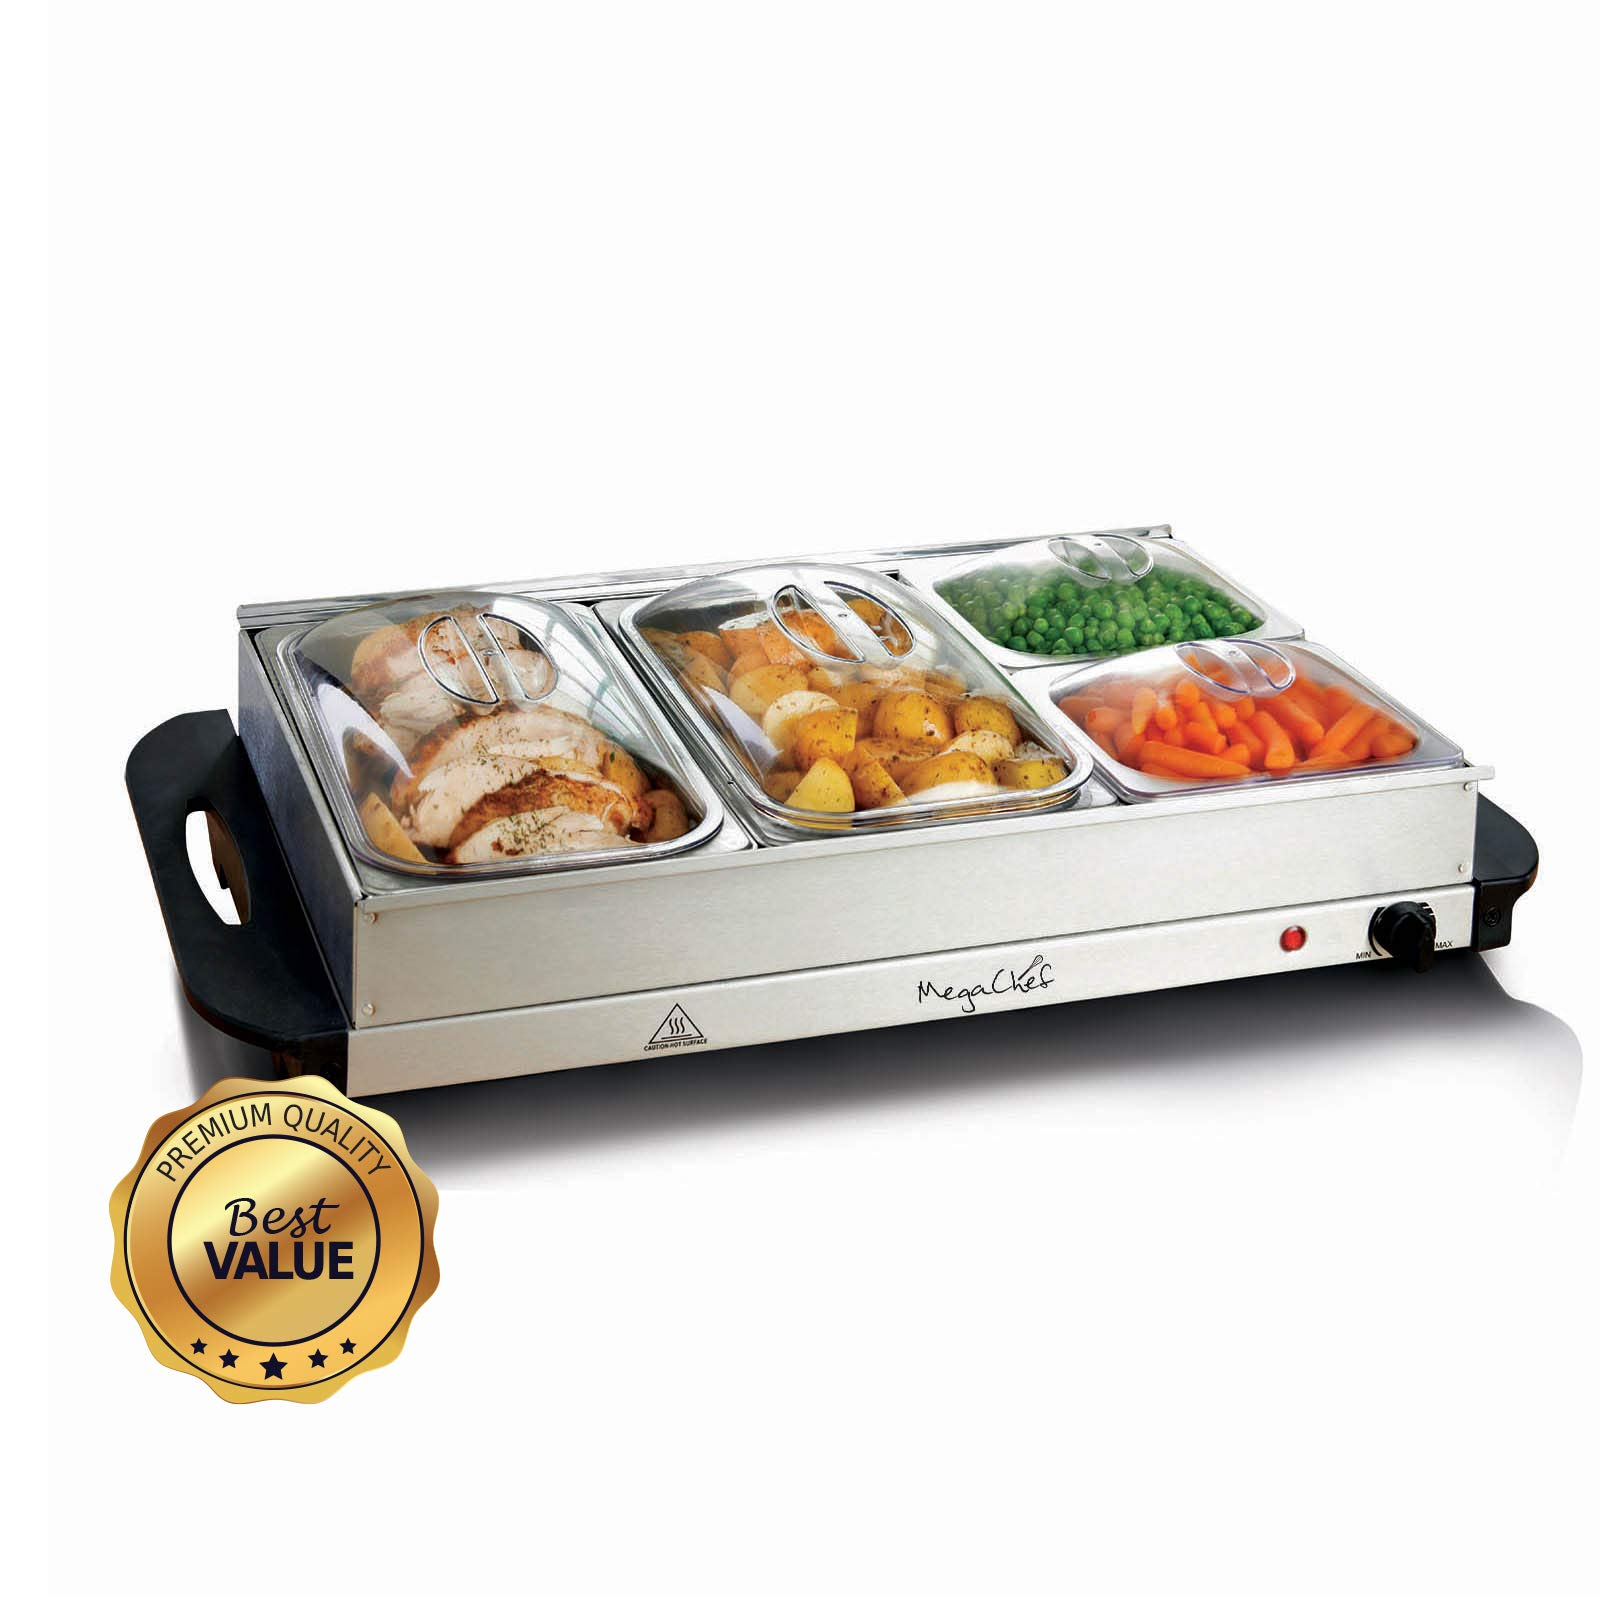 MegaChef MC-9003C Buffet Server & Food Warmer with 4 Sectional, Heated Warming Removable Tray Frame by Megachef